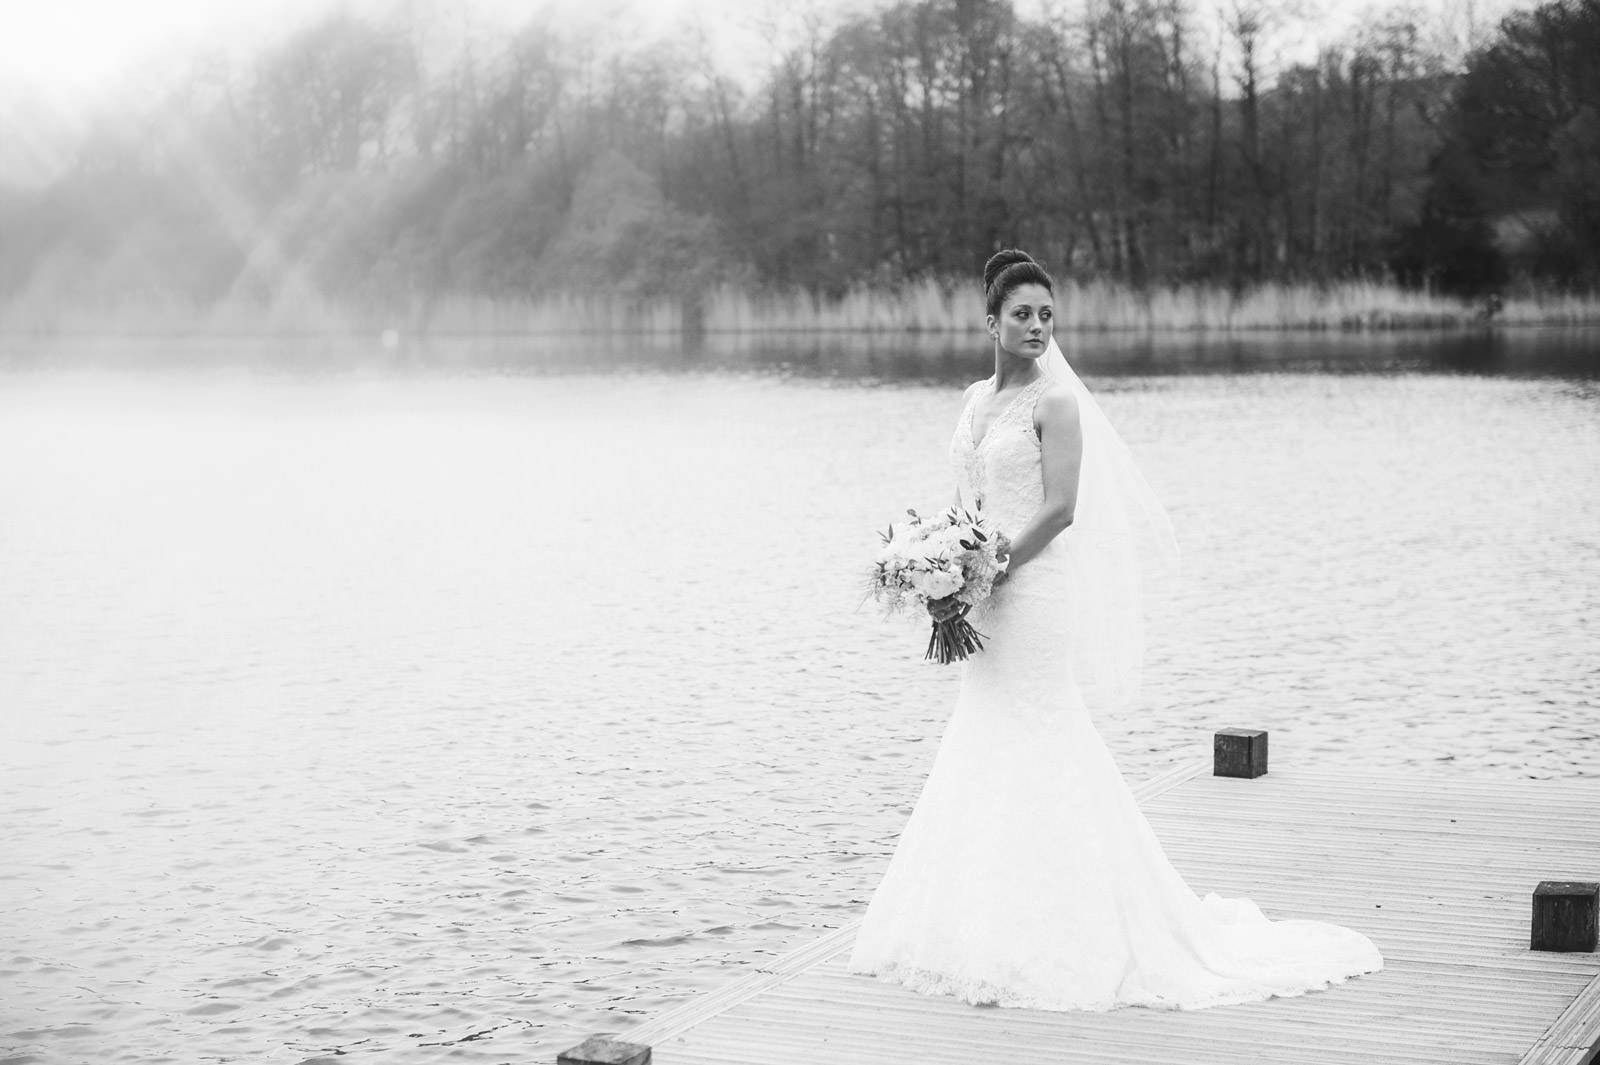 Bride stood on a jetty, holding wedding flowers looking to the left with a lake and tree line in background.